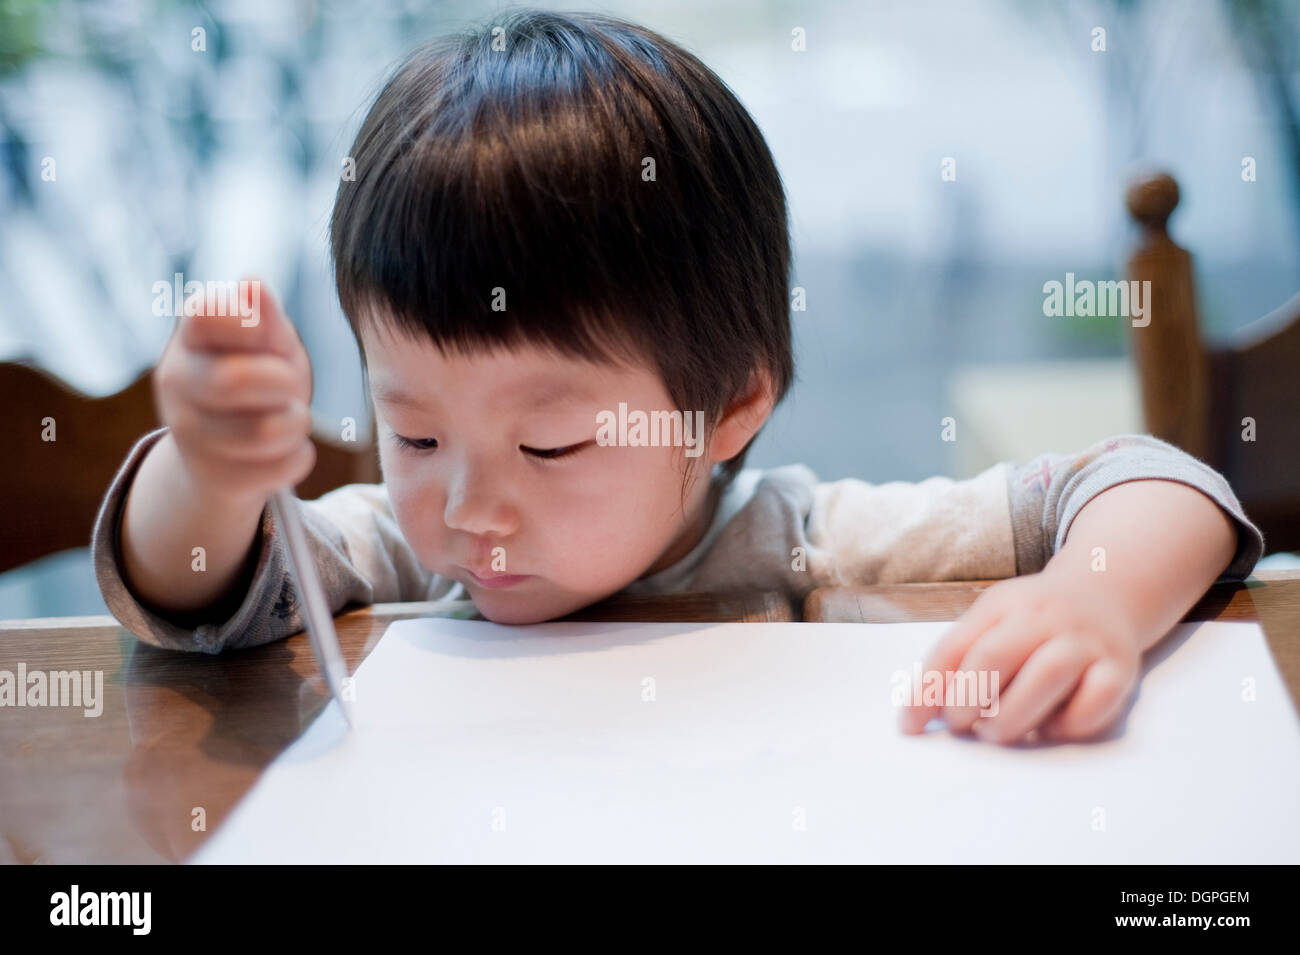 Boy drawing on paper with pen, close up - Stock Image